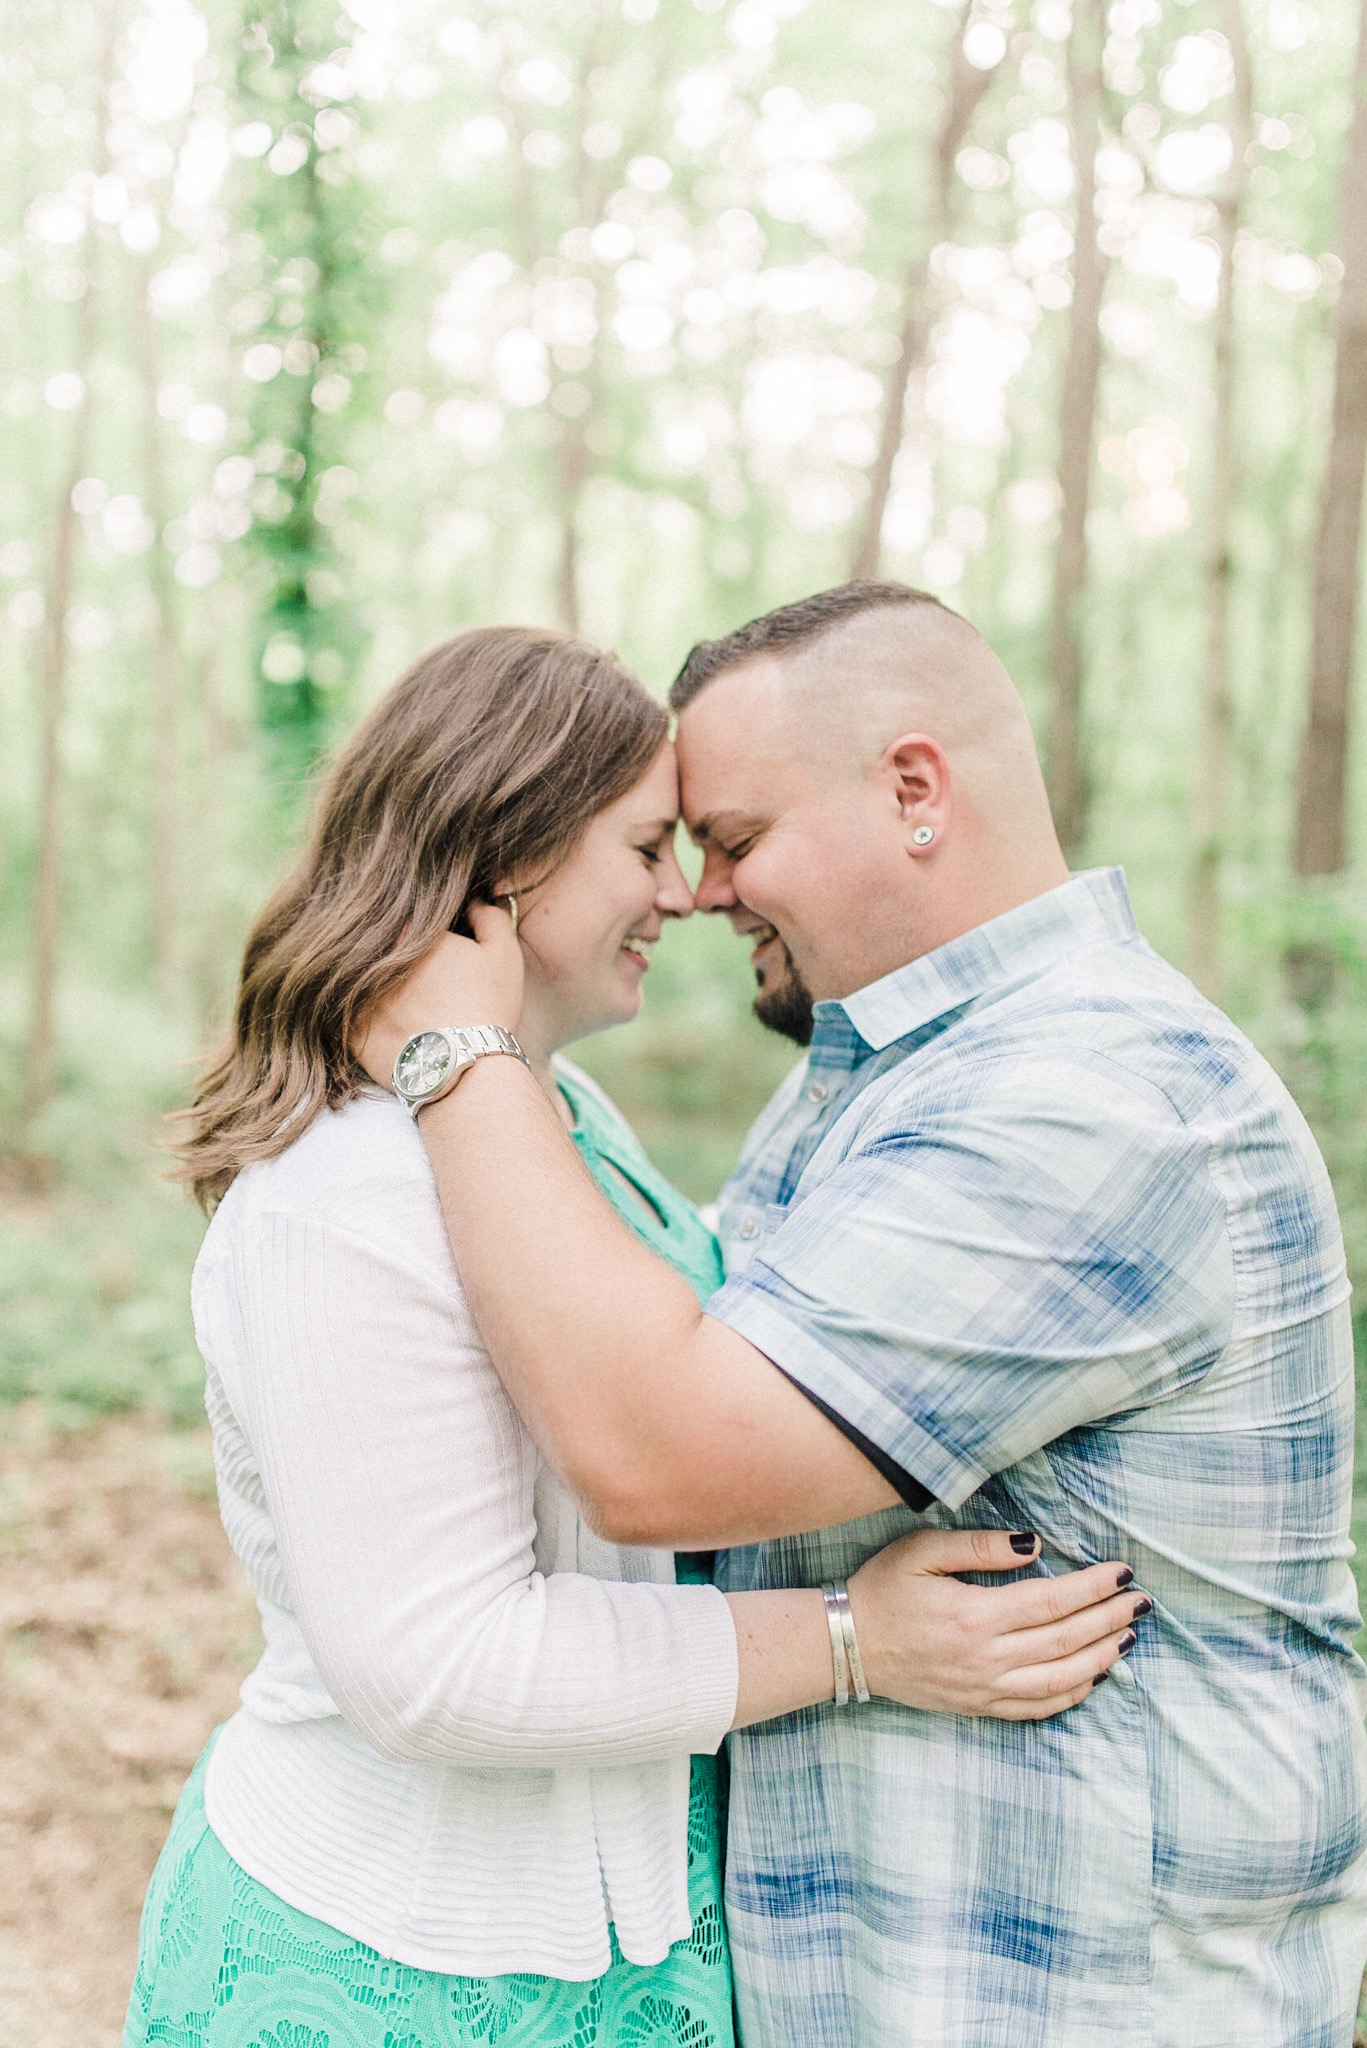 Colleen + Chris | Fun-Lovin' Engagement Photography Session in Carmel, IN | Indianapolis Wedding Photographers